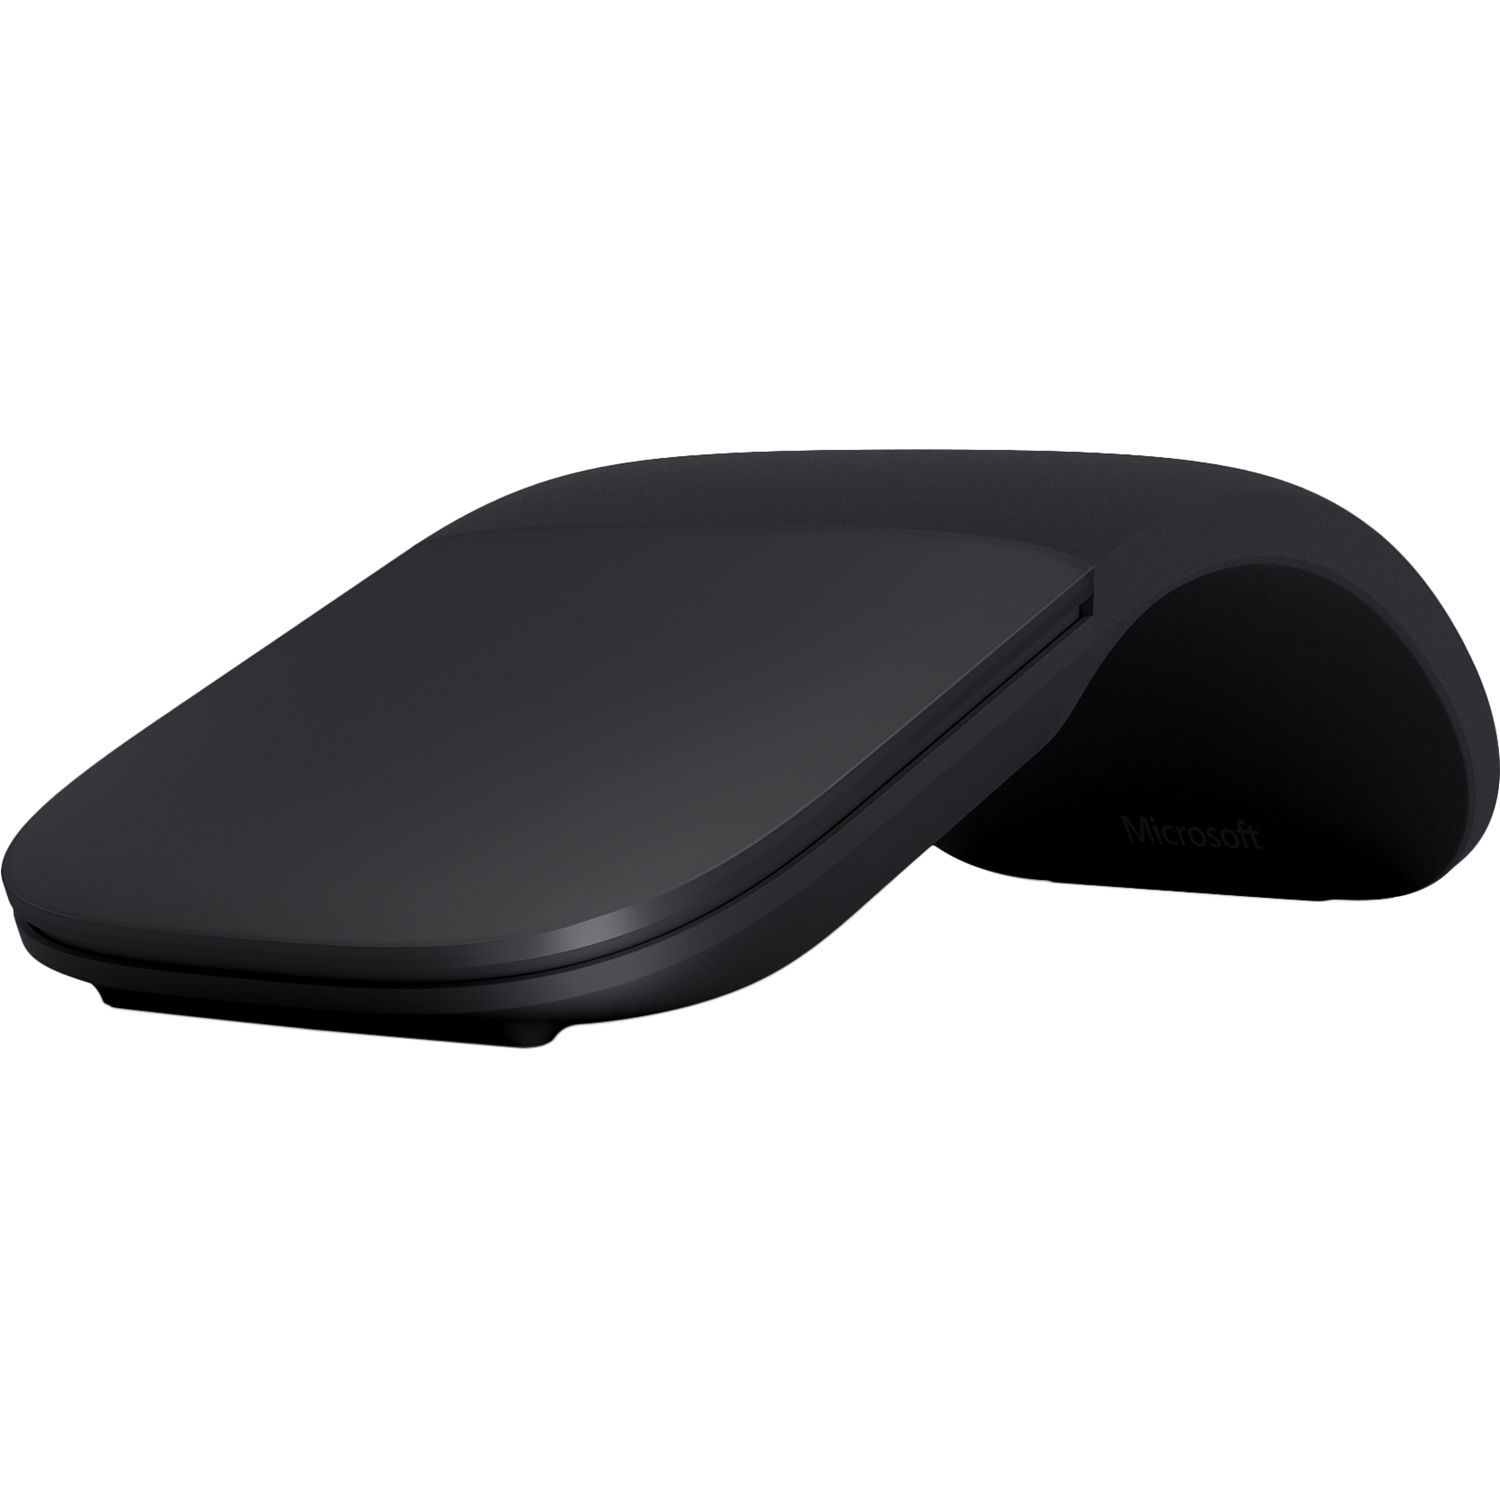 microsoft arc wireless mouse black elg 00001 b h photo video. Black Bedroom Furniture Sets. Home Design Ideas